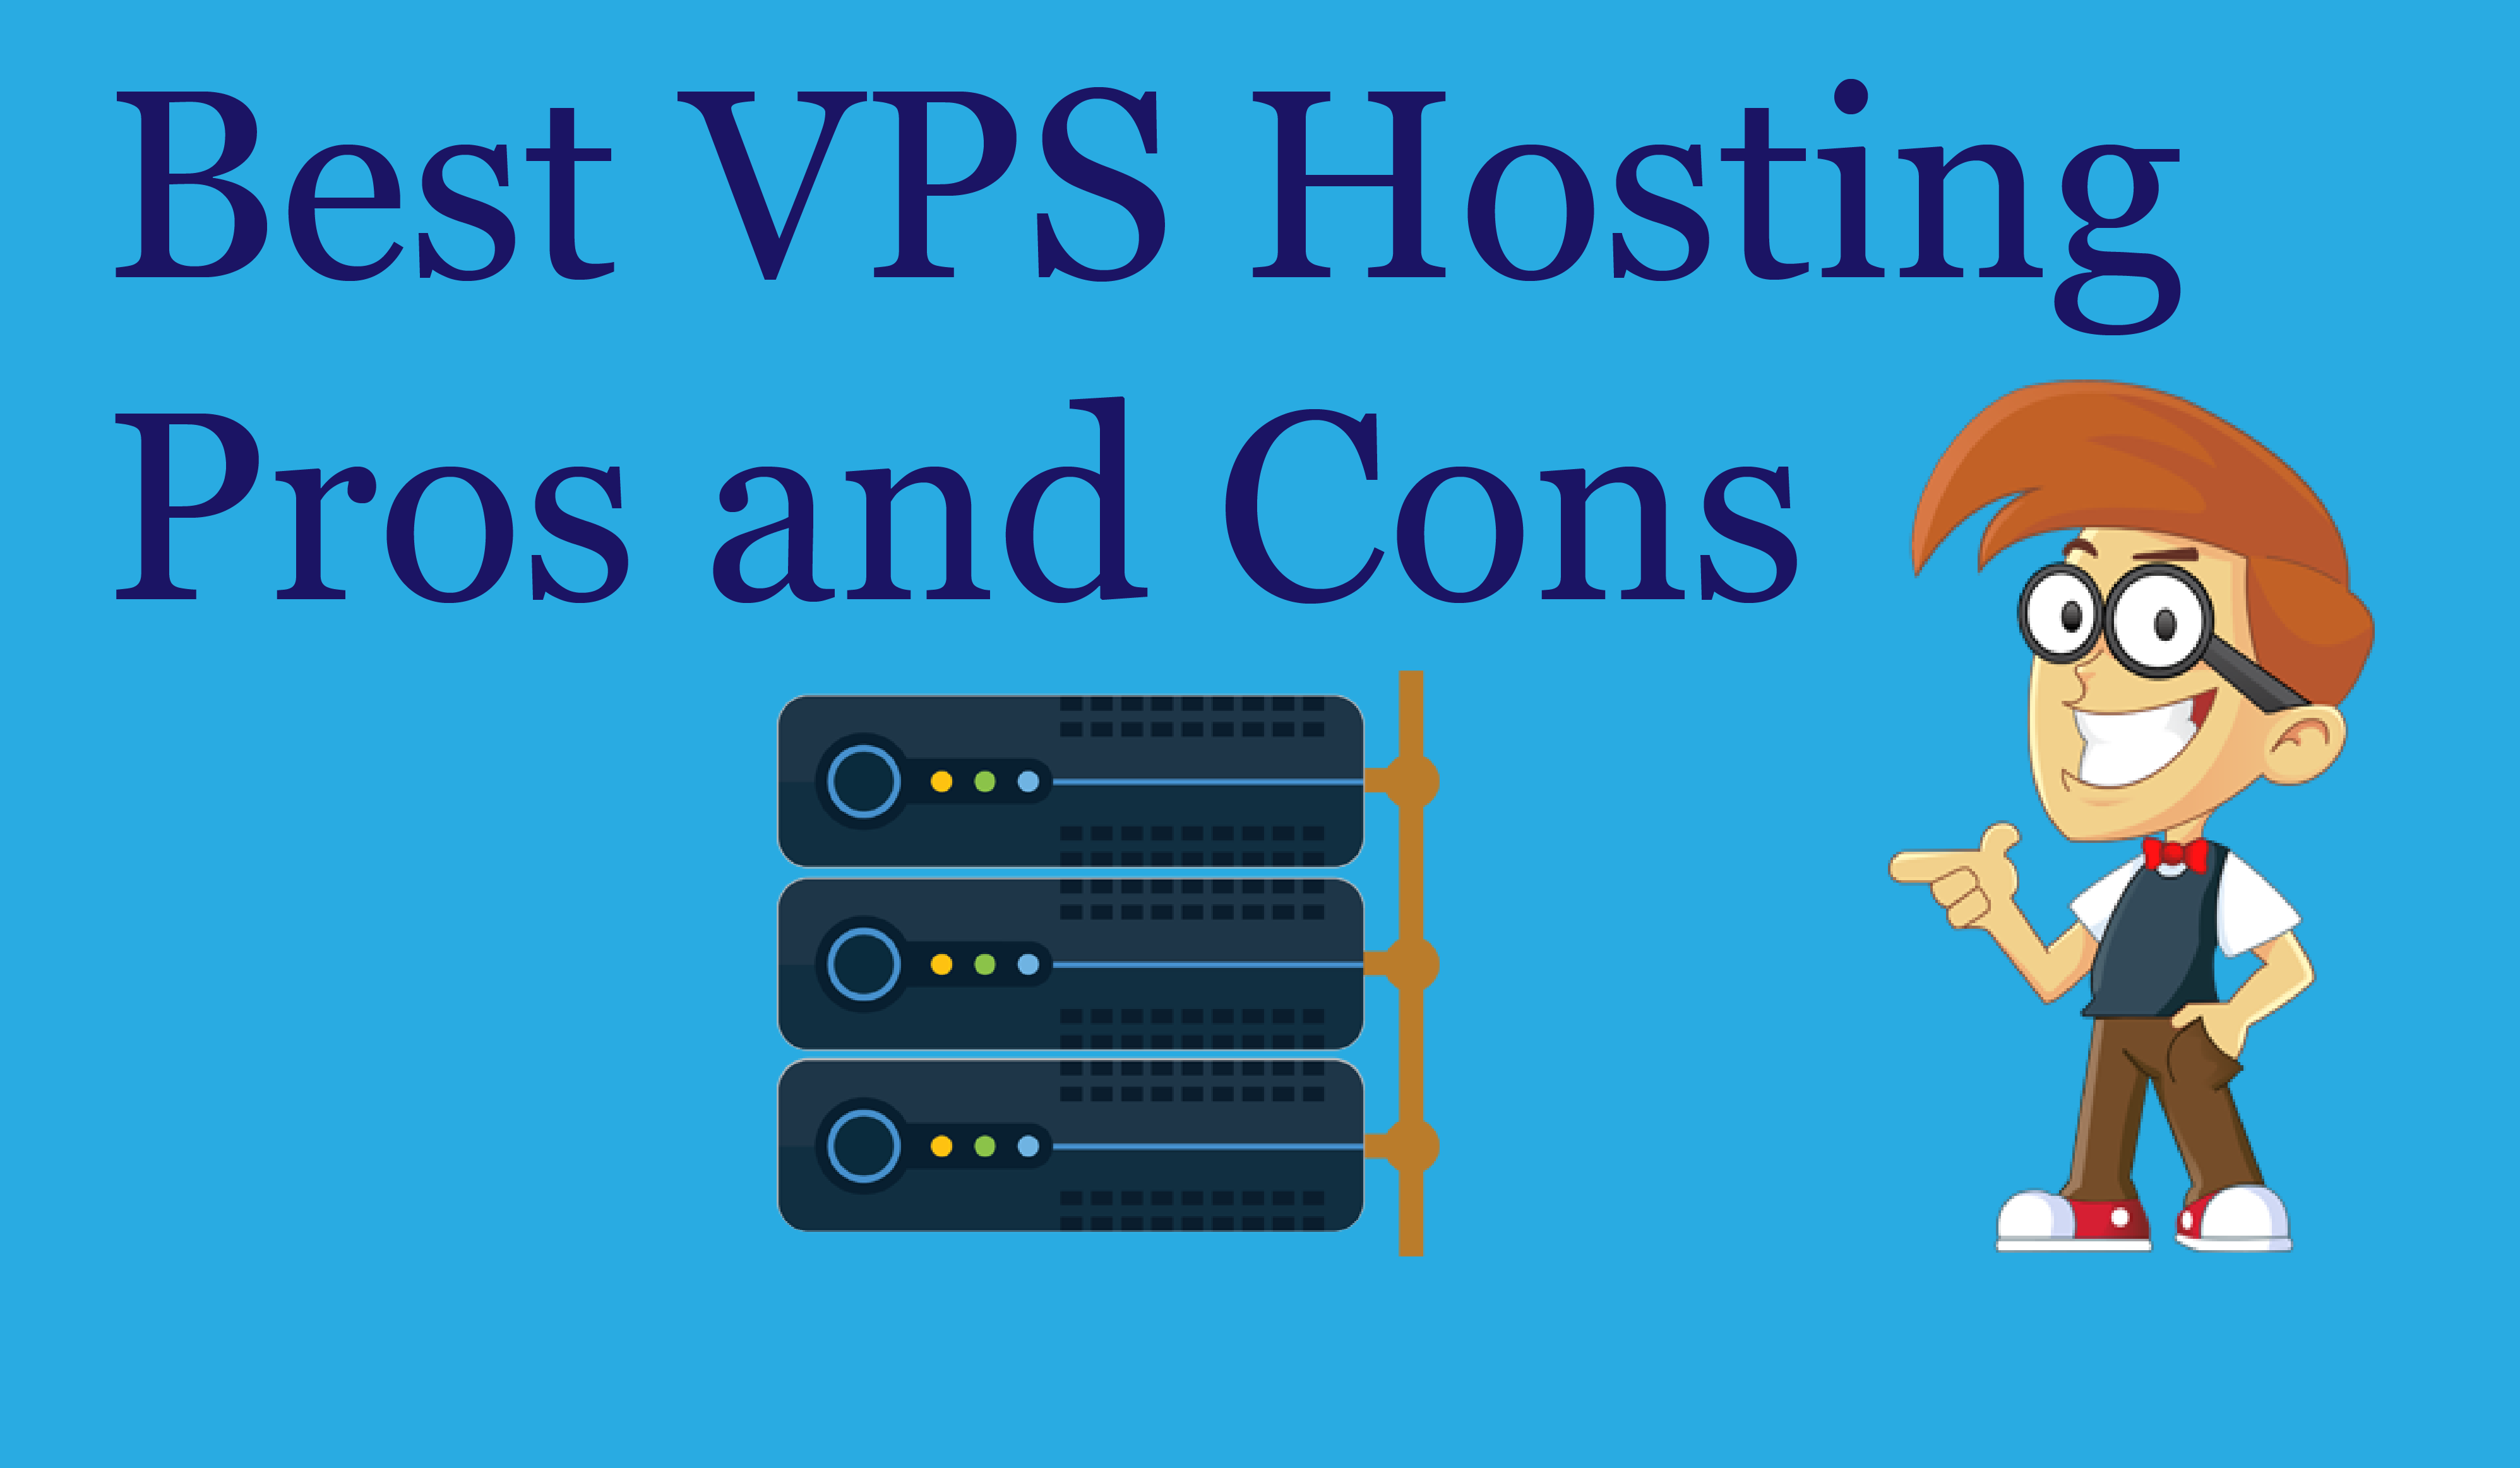 You Should Know Best VPS Hosting Pros and Cons helpful Compare